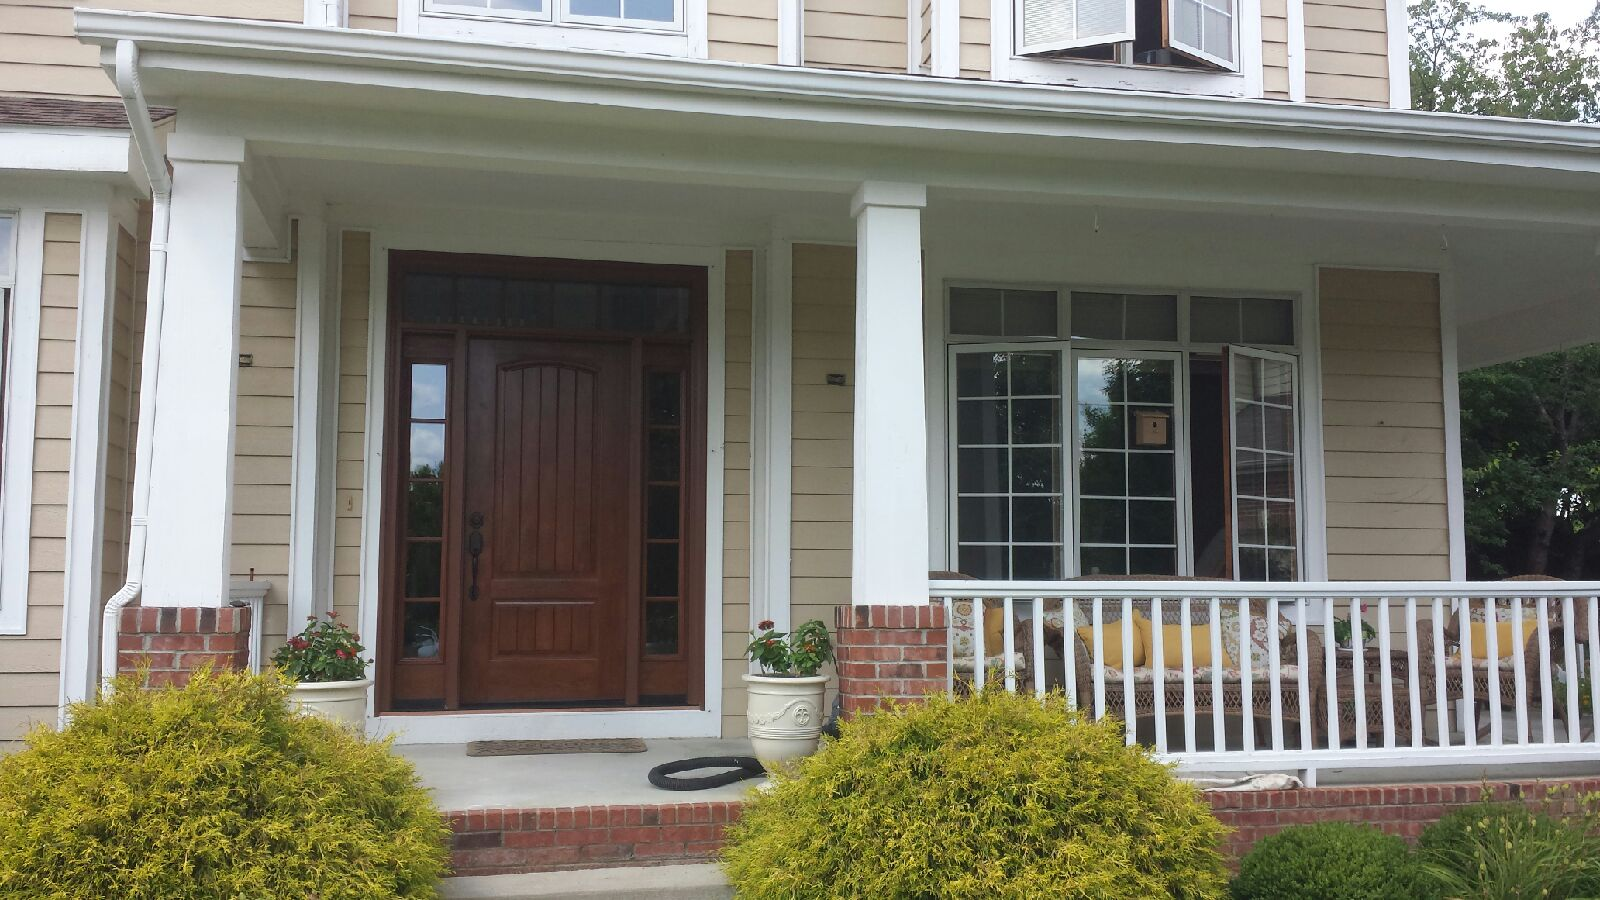 CLICK HERE FOR INFORMATION FOR CUSTOM WINDOWS AND DOORS